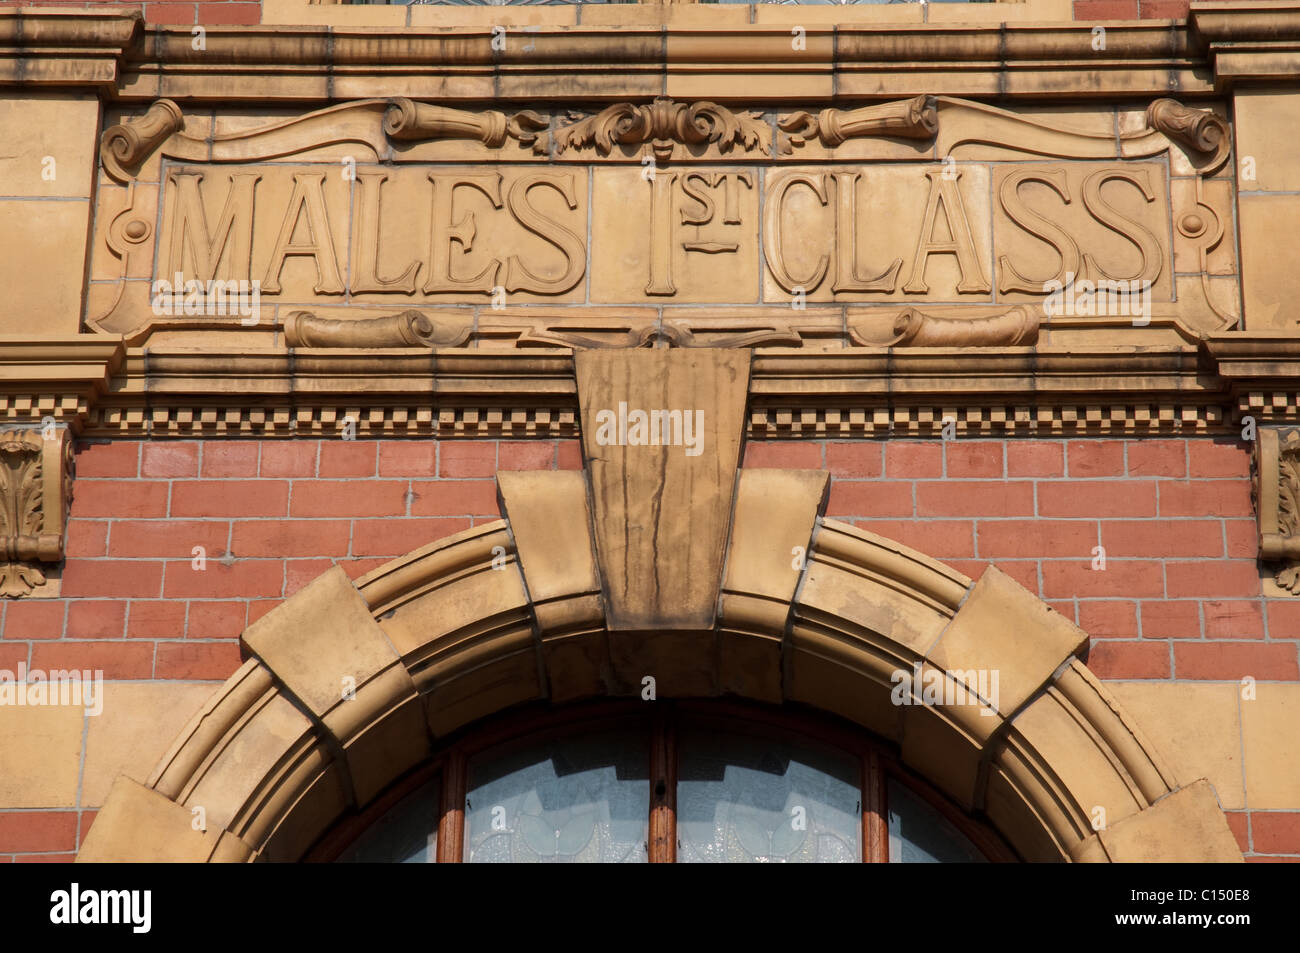 Males 1st Class, terracotta sign above doorway,Victoria Baths,Manchester.Closed in 1993 the building is now being - Stock Image